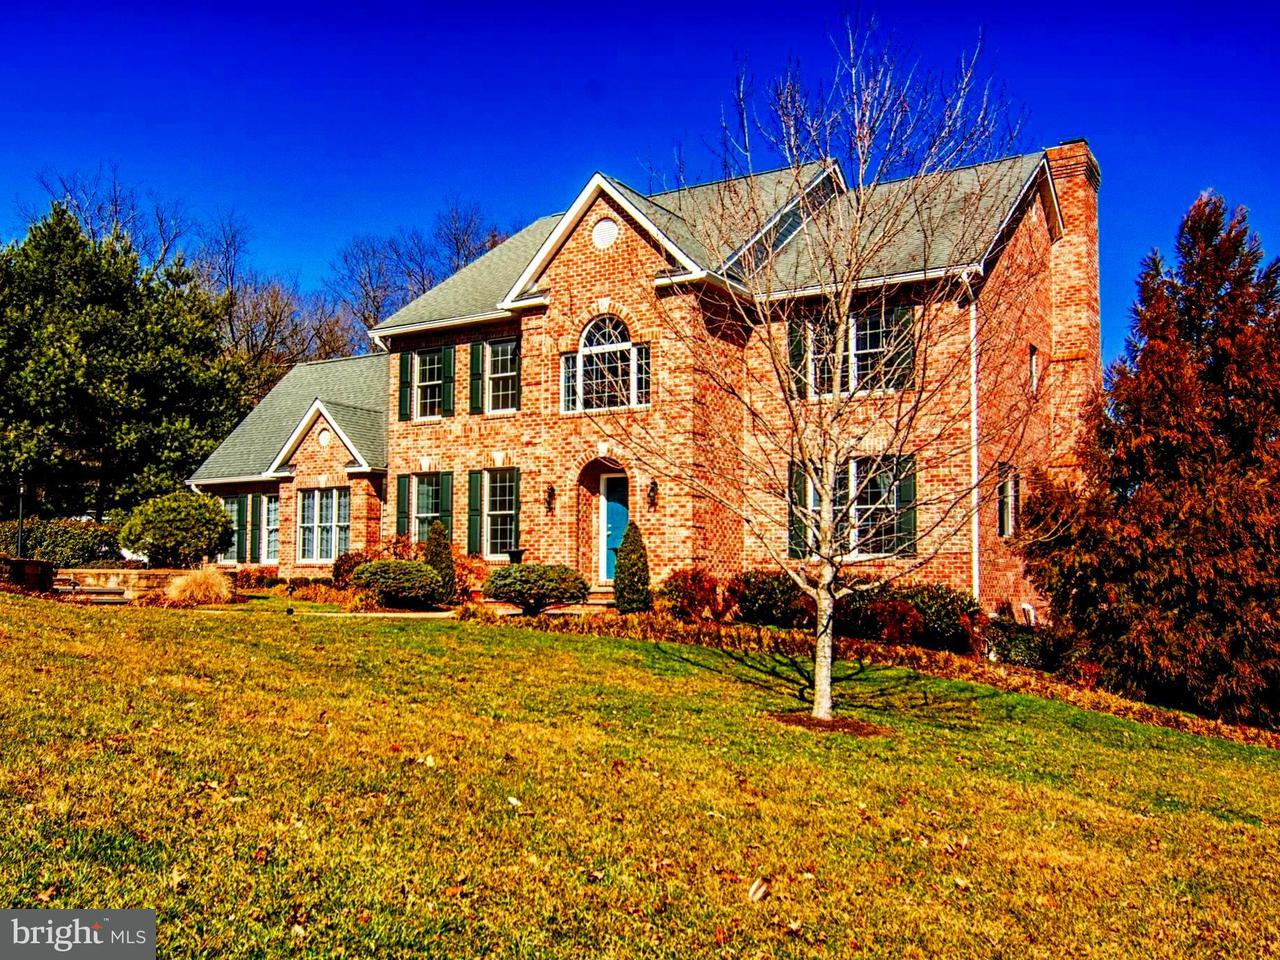 Single Family Home for Sale at 16007 Baconsfield Lane 16007 Baconsfield Lane Monkton, Maryland 21111 United States